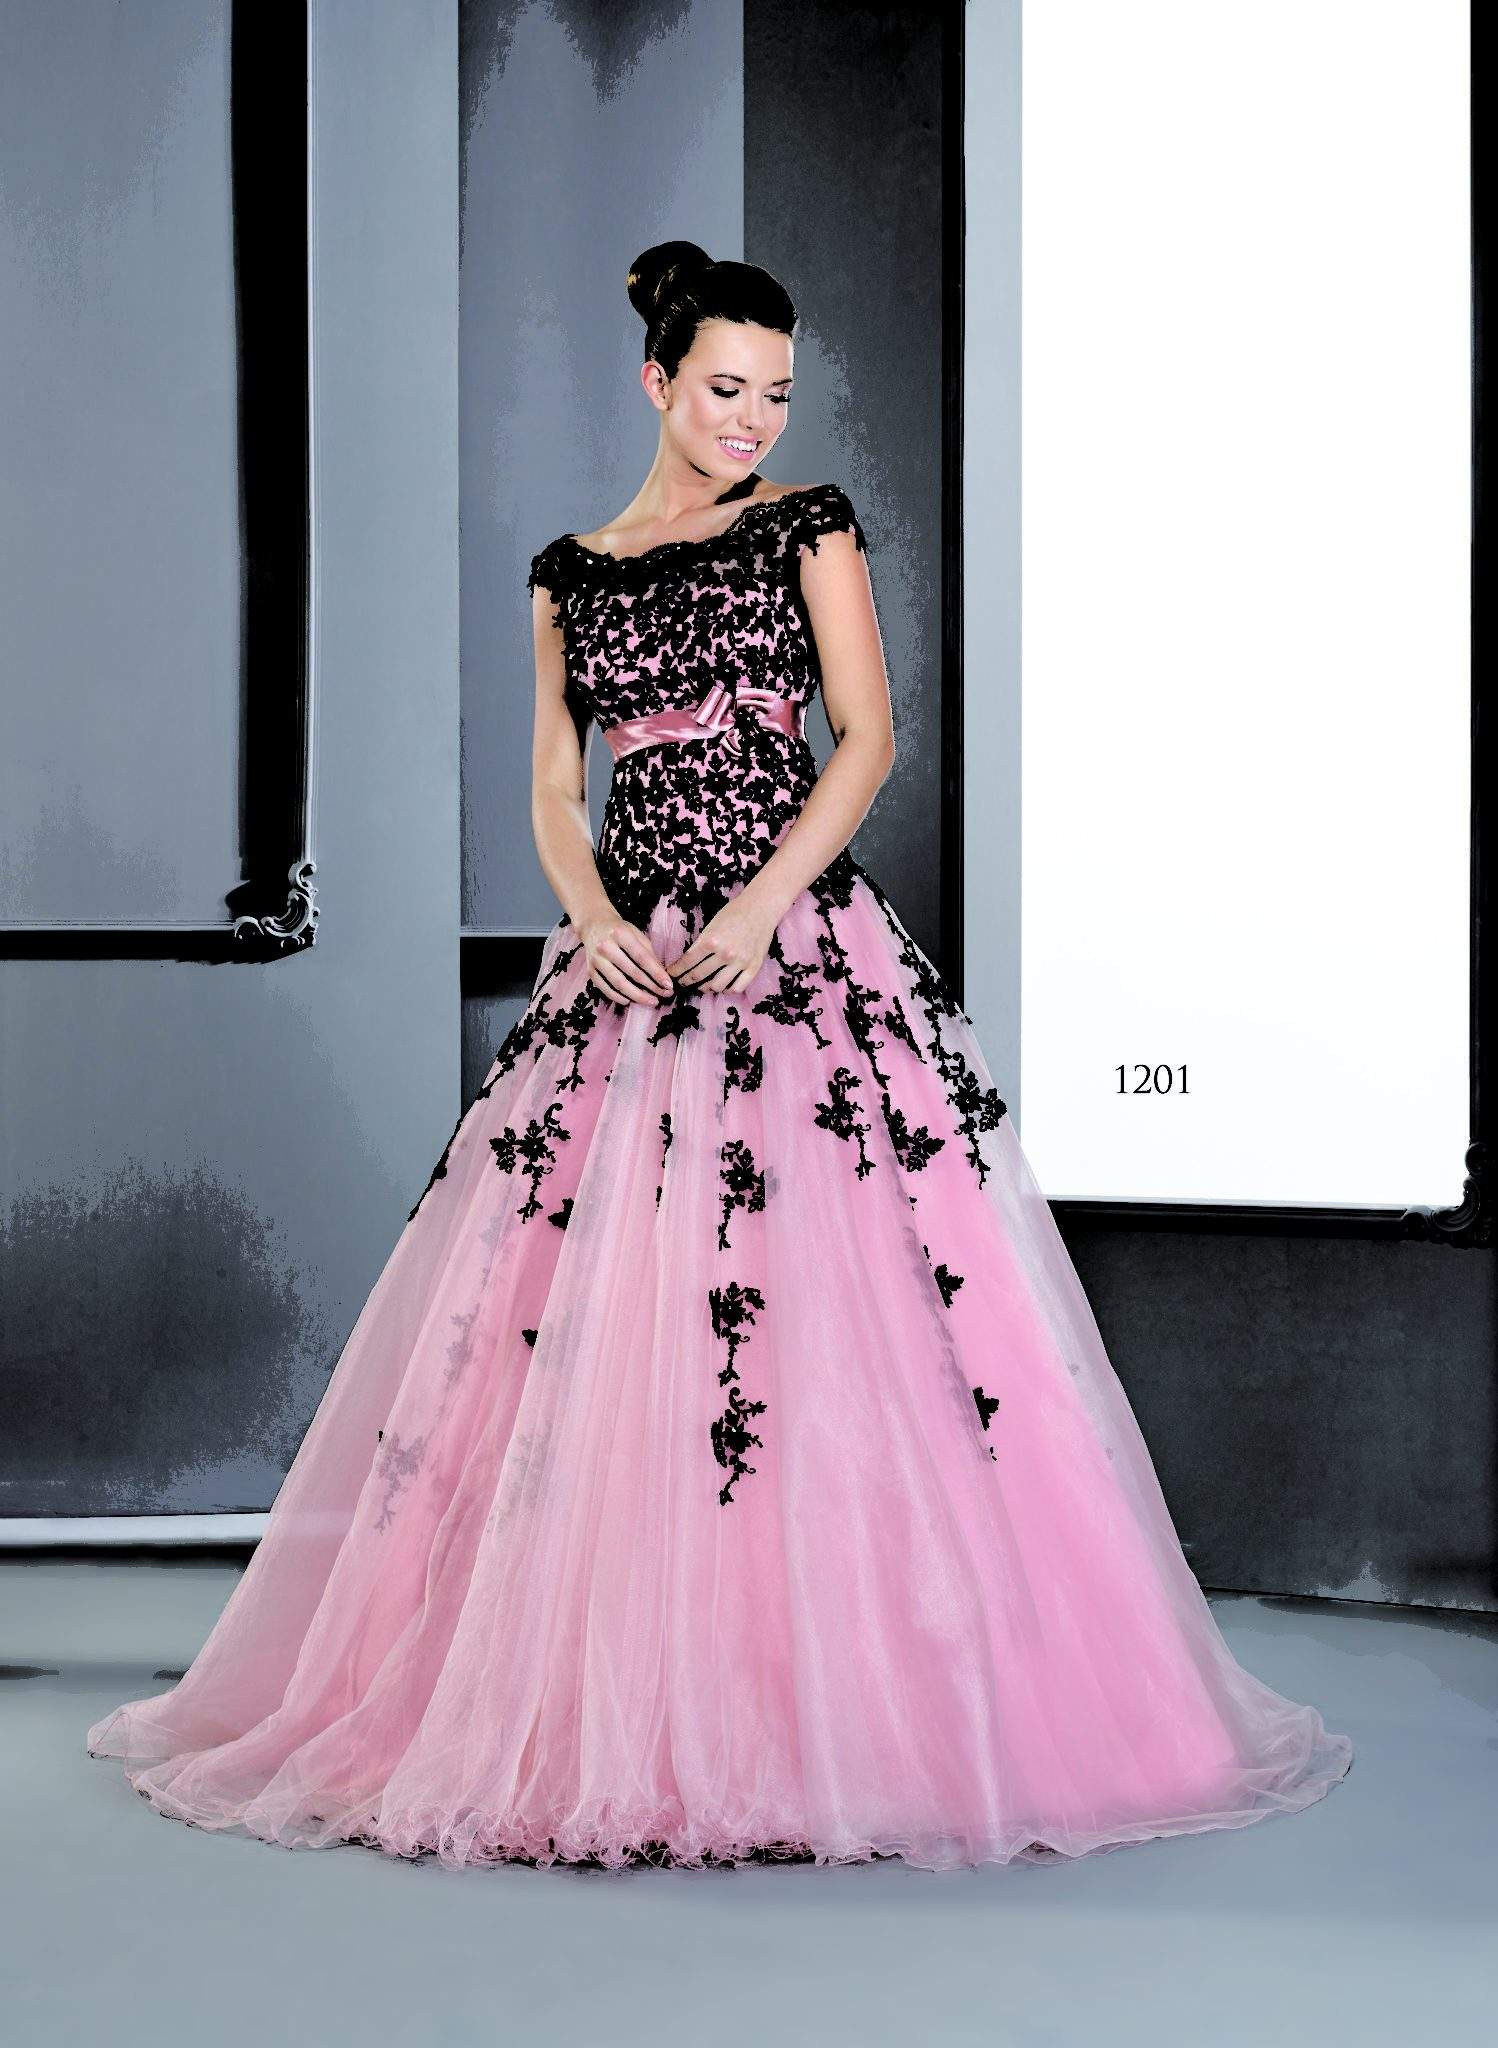 Pink Cap Sleeve Ball Gowns w/ Lace - Darius Cordell Fashion Ltd